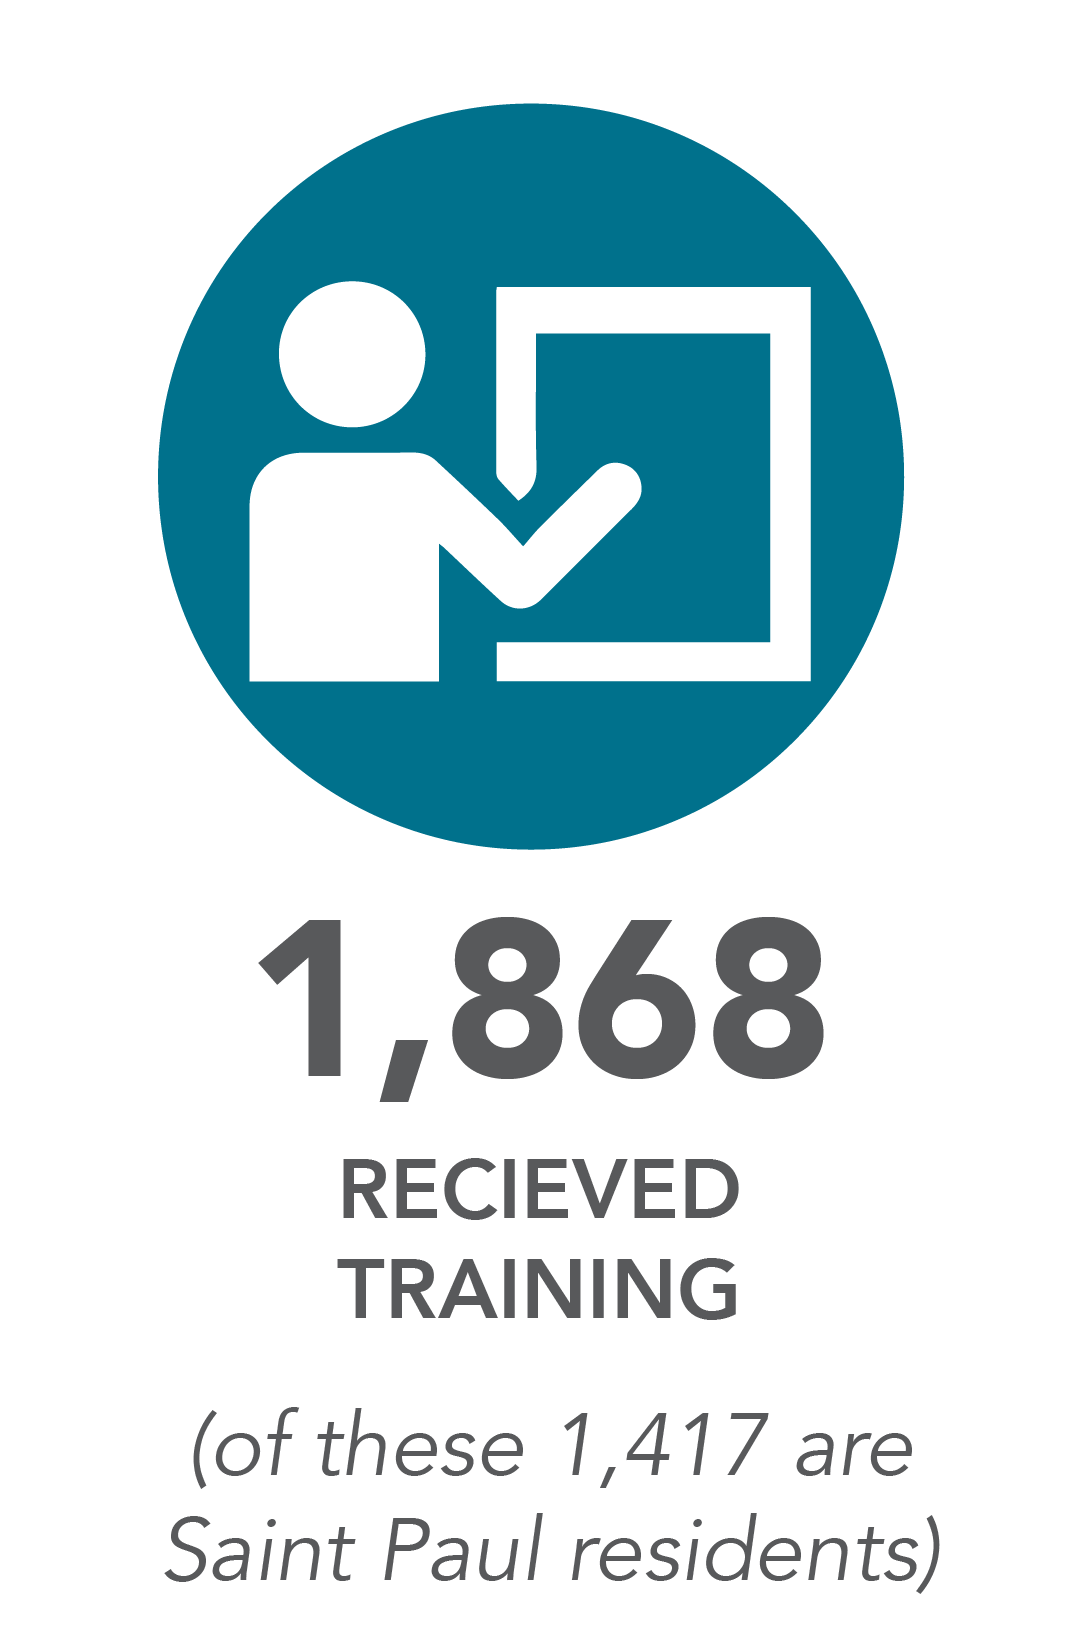 1,868 received training. (of these 1,417 are Saint Paul residents)